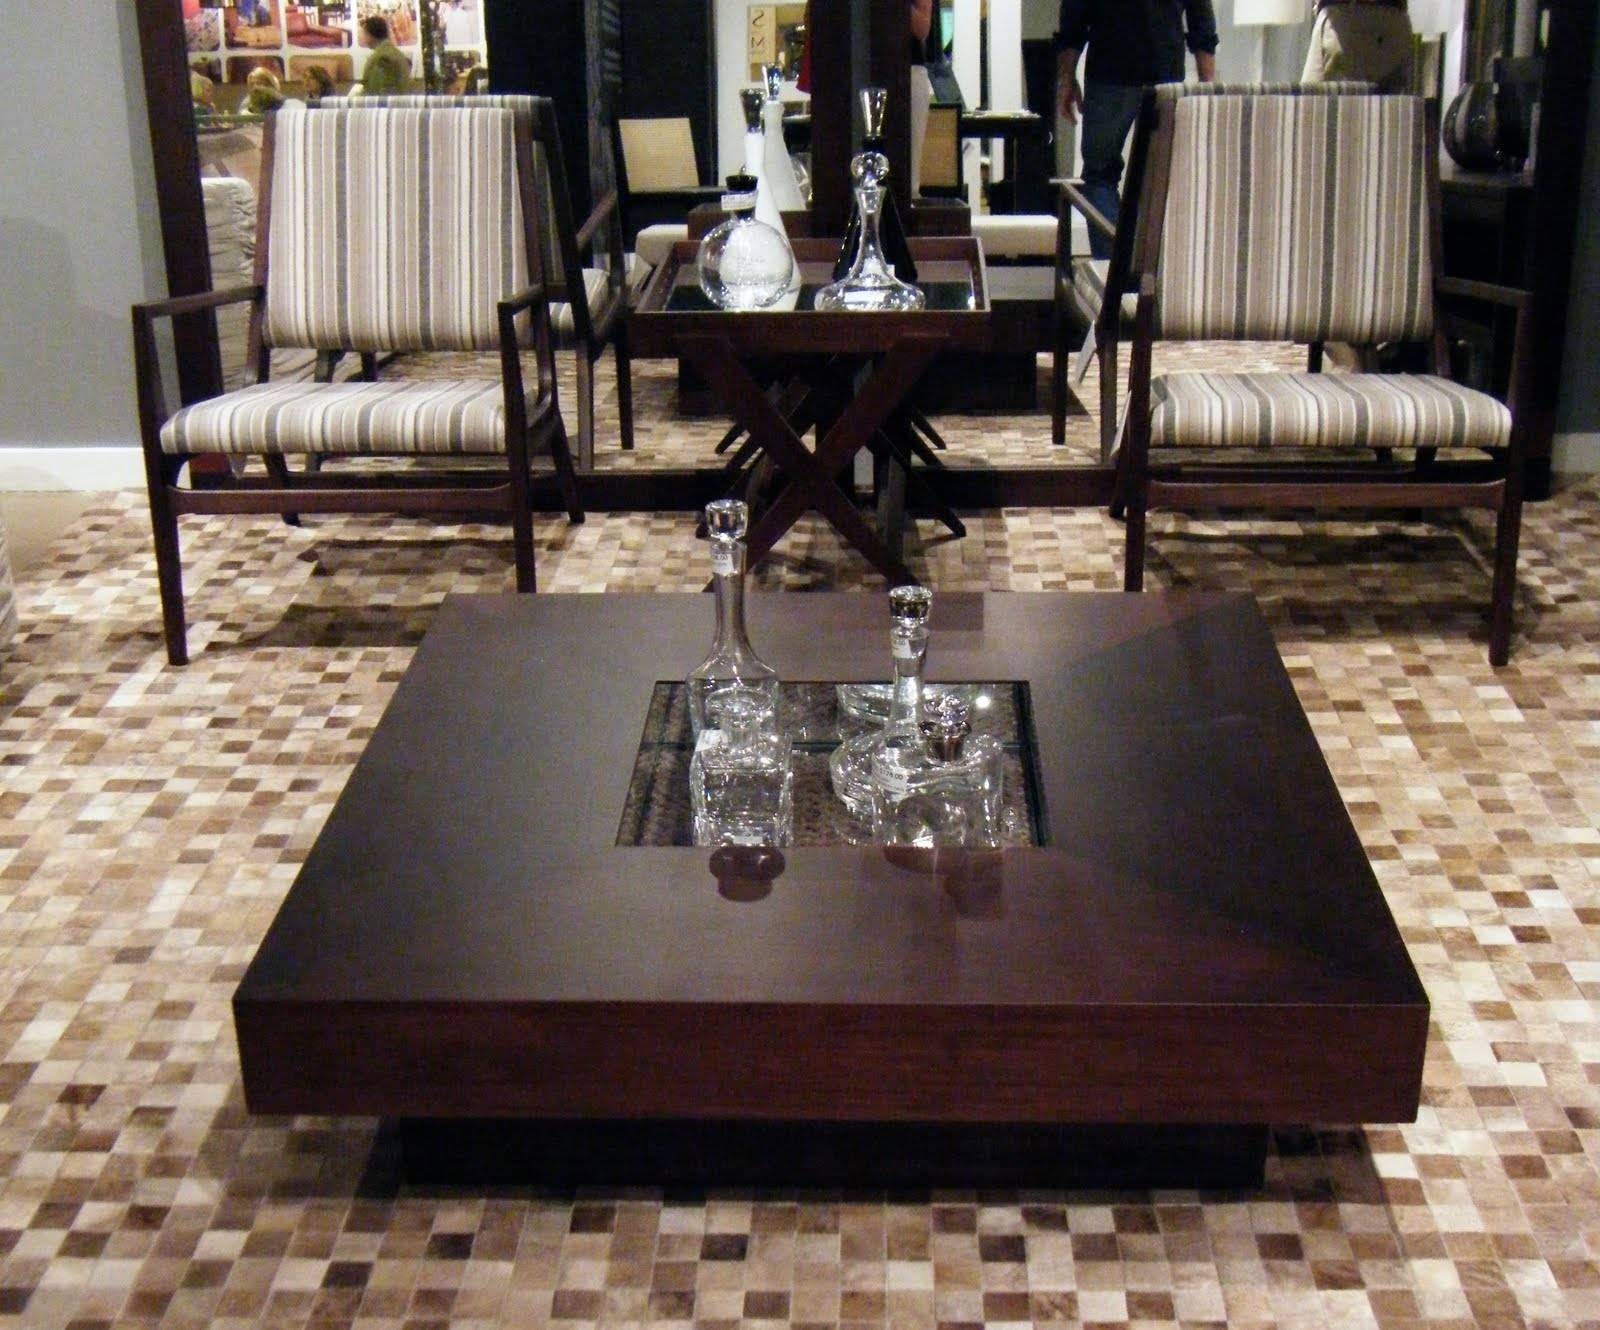 Modern Low Profile Coffee Tables | Coffee Tables Decoration regarding Large Low Square Coffee Tables (Image 28 of 30)